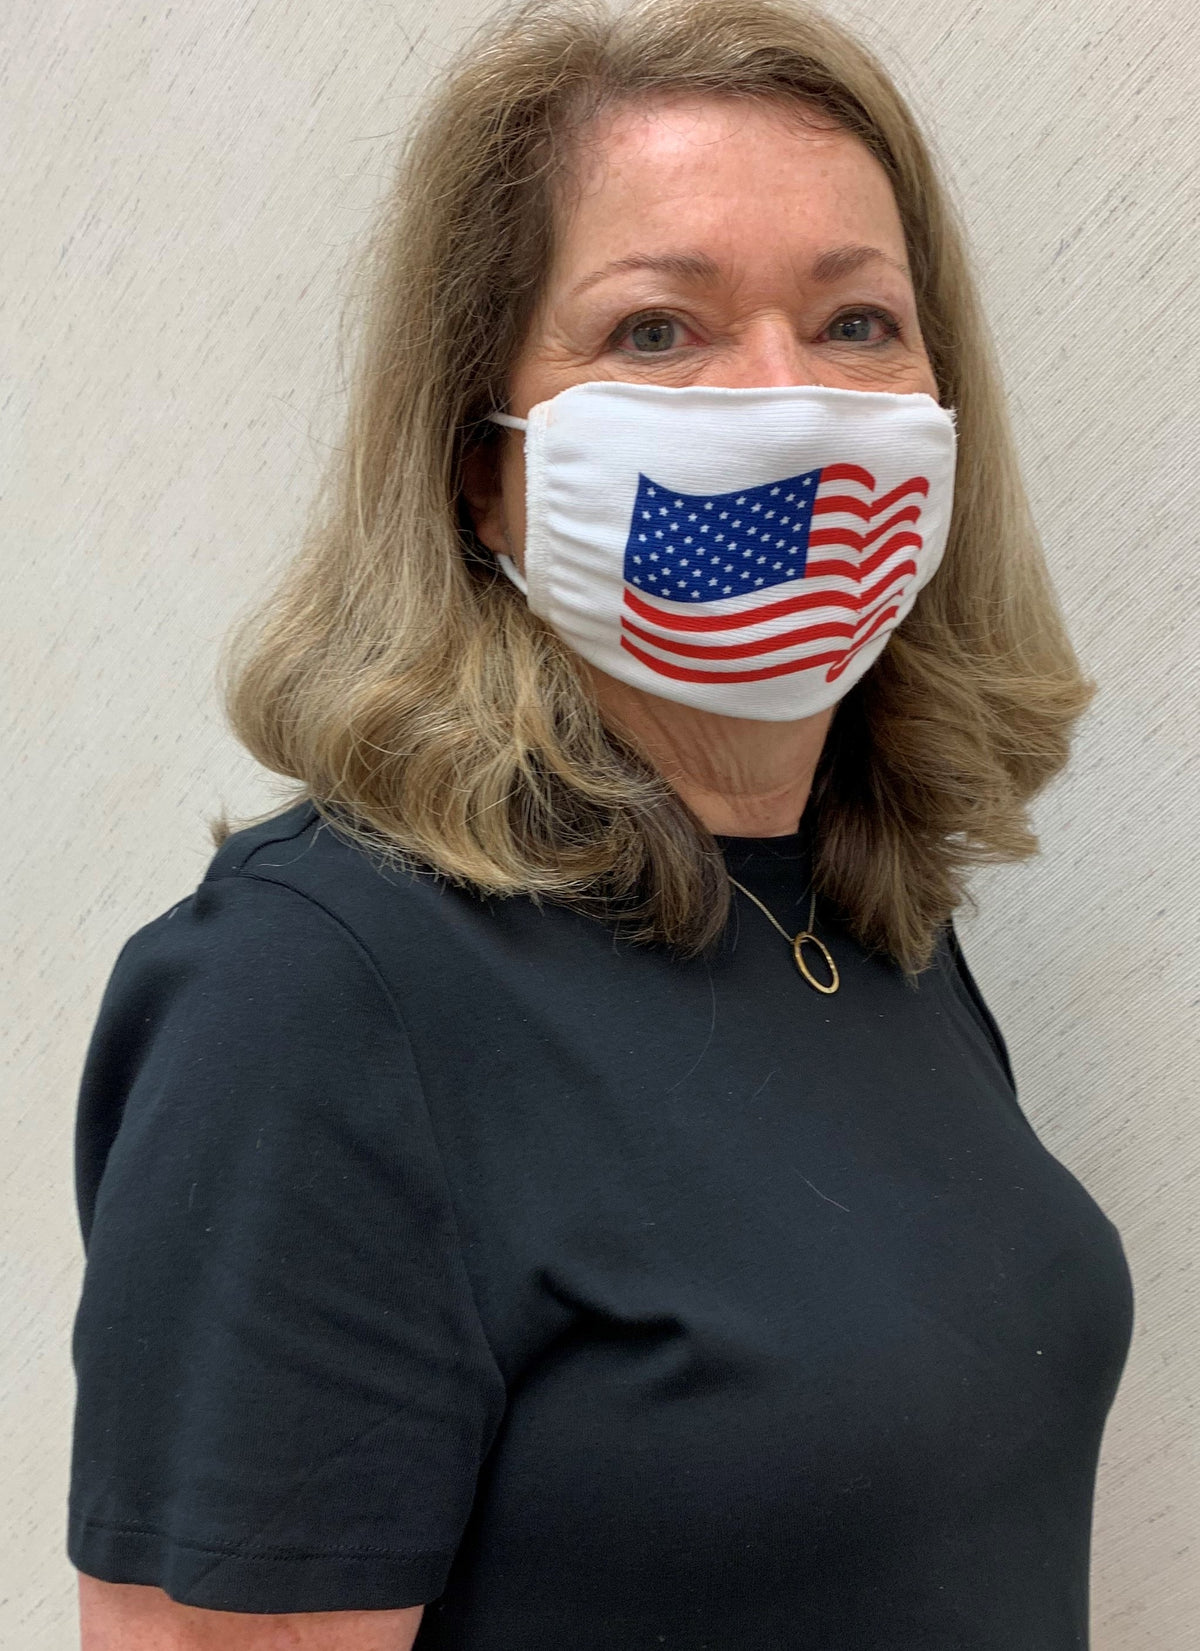 M1776 American Flag - Adult Personal Protection Mask - 12 Pack